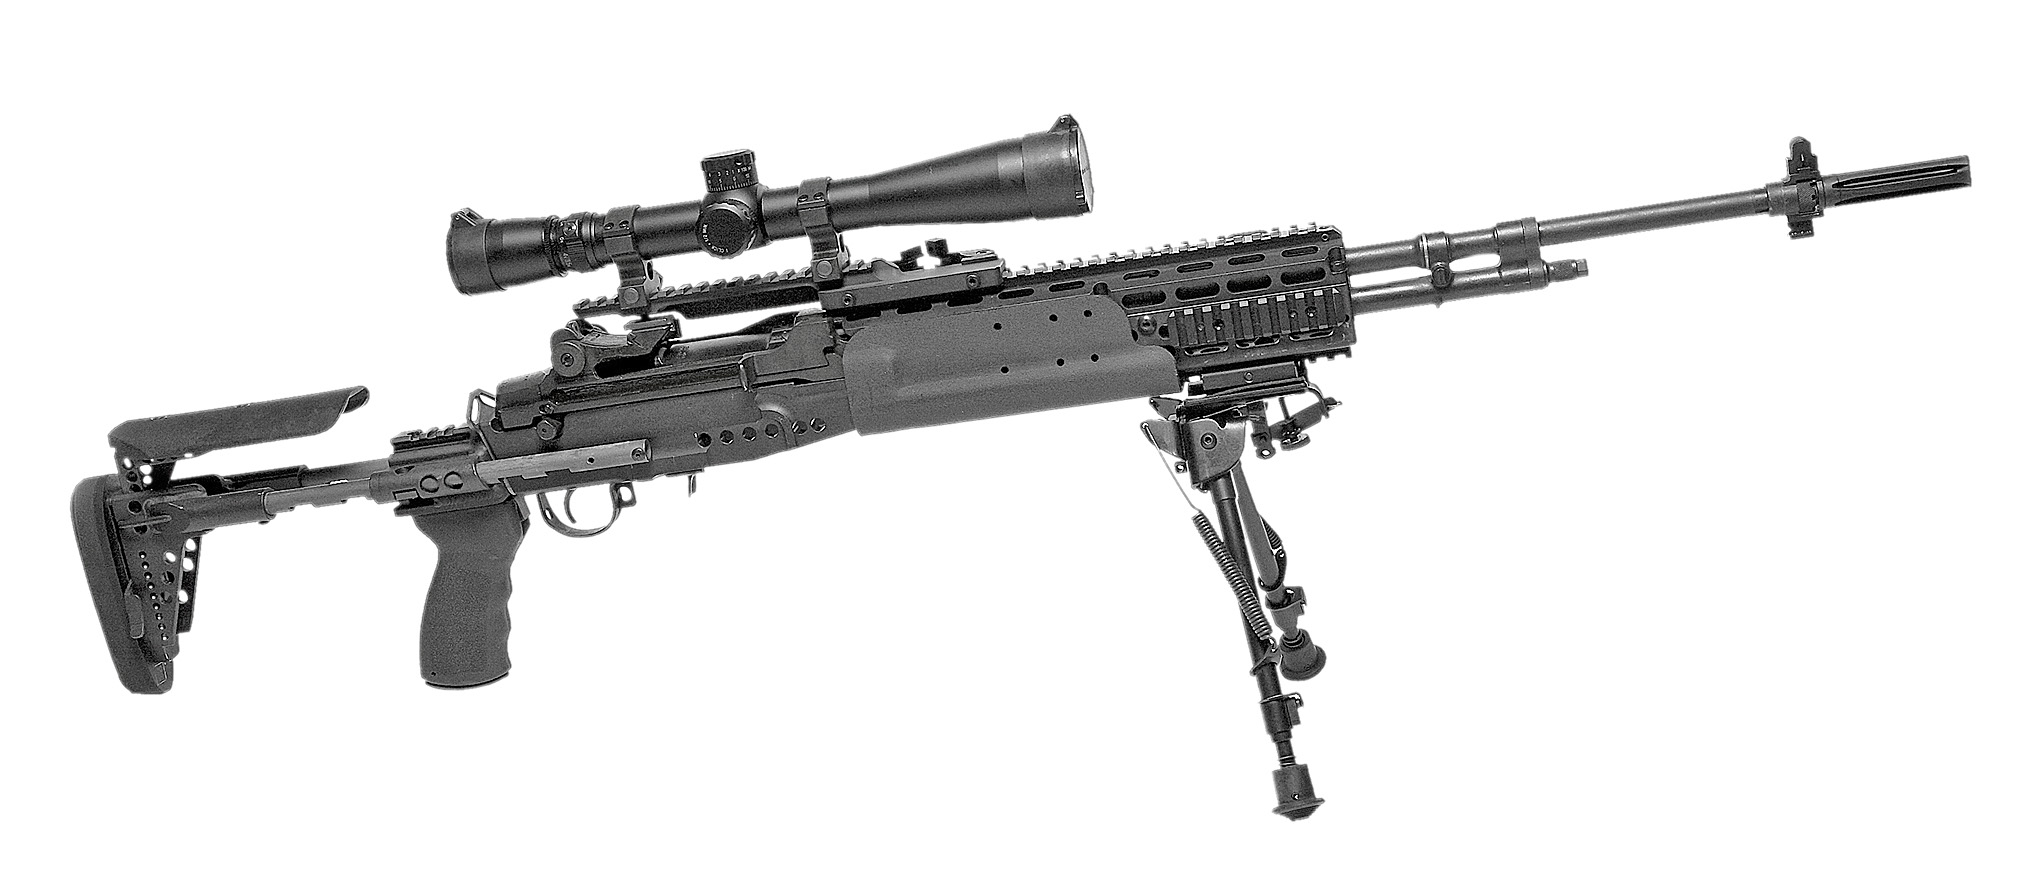 Mk 14 Enhanced Battle Rifle - Wikipedia